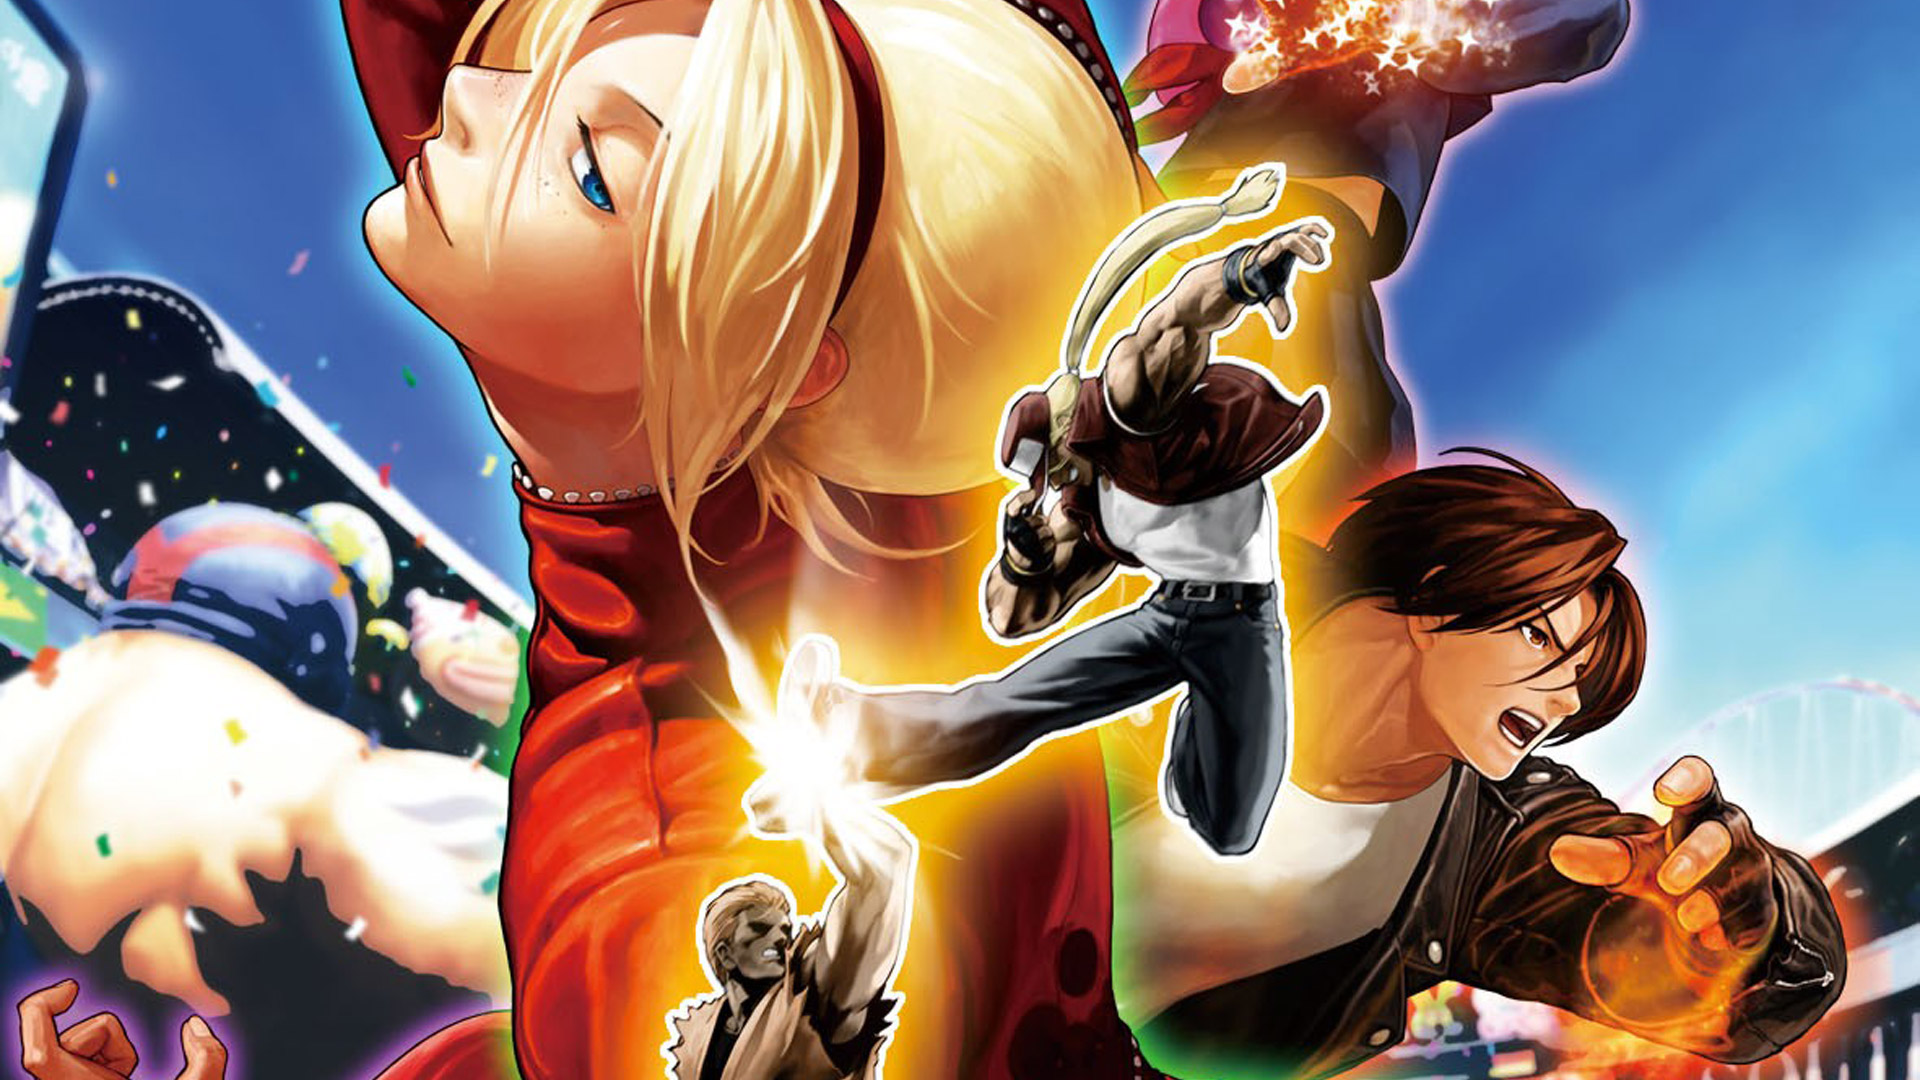 Free The King of Fighters XII Wallpaper in 1920x1080